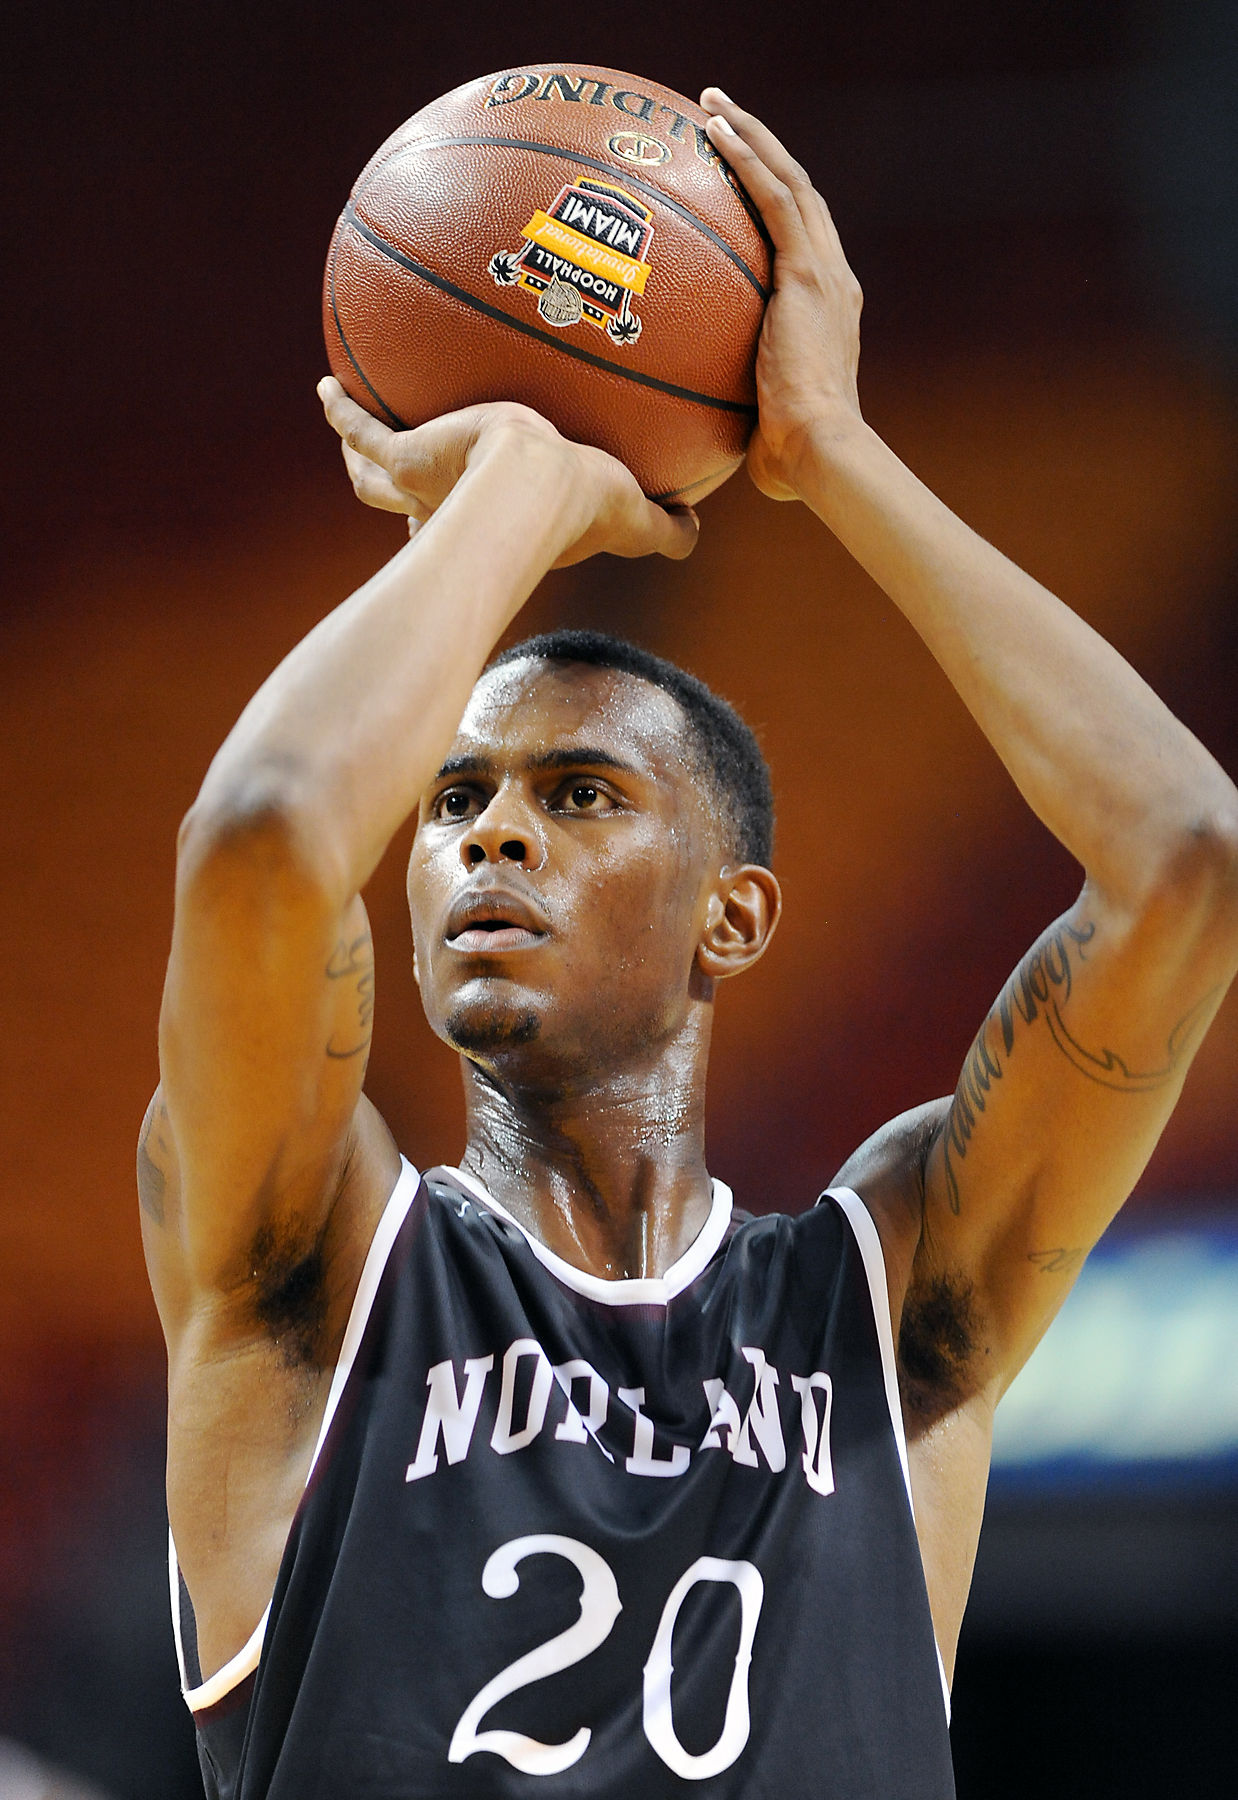 Dewan Huell is hoping to lead Miami Norland to another state title (Photo: Robert Duyos, USA TODAY Sports)